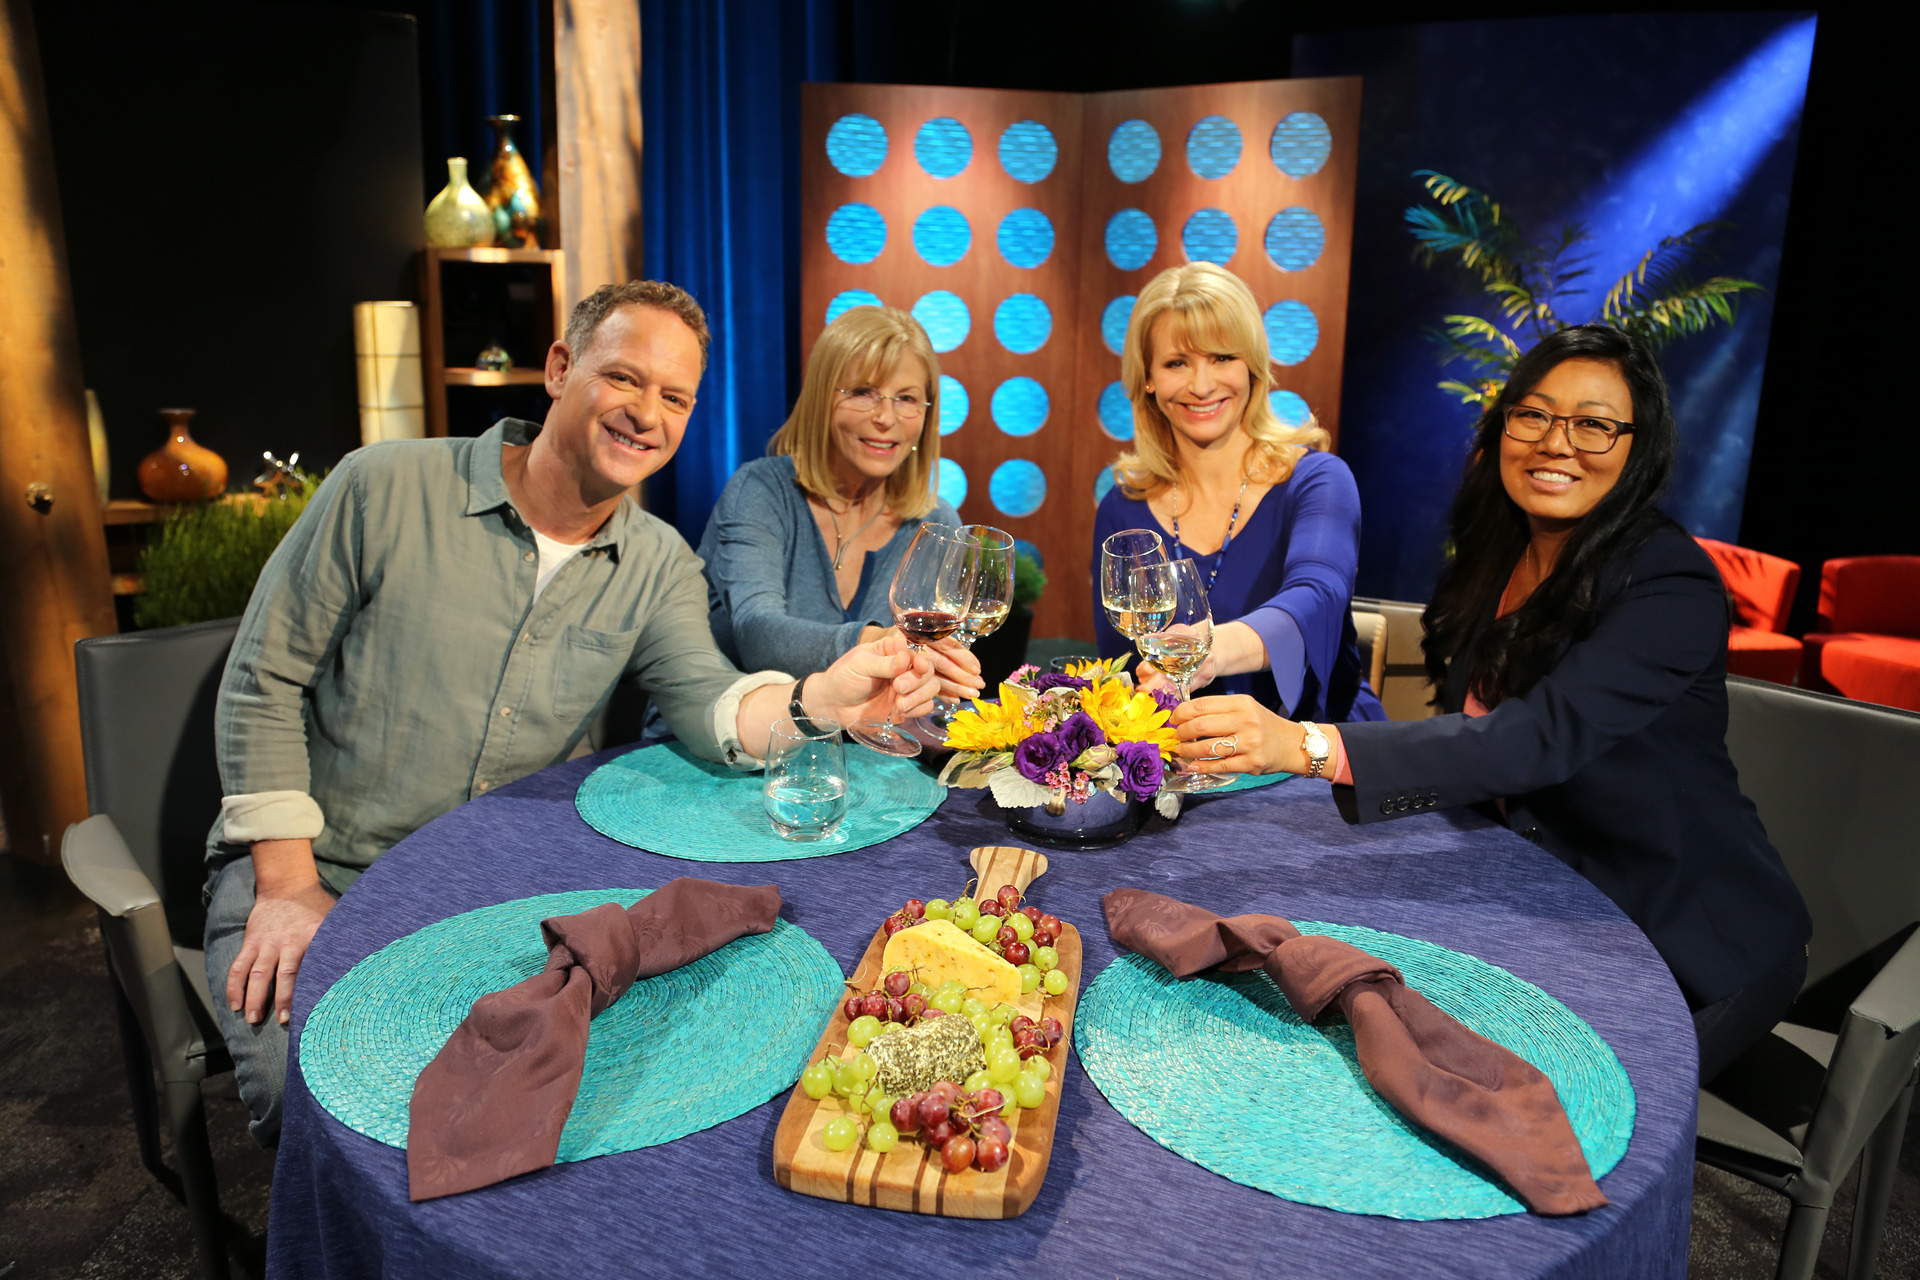 Host Leslie Sbrocco and guests on the set of the episode 3 of season 11.